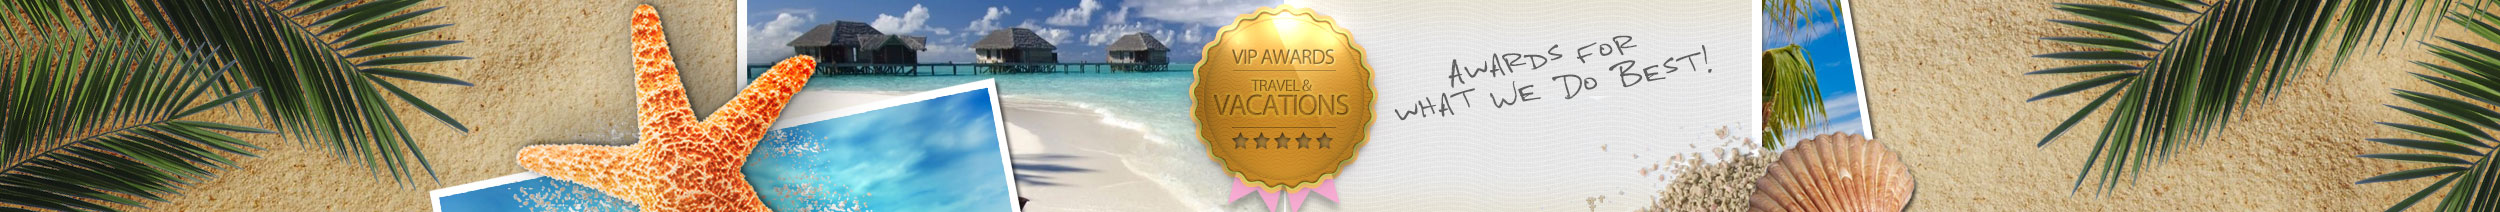 Sandals Destination Wedding Certification Program